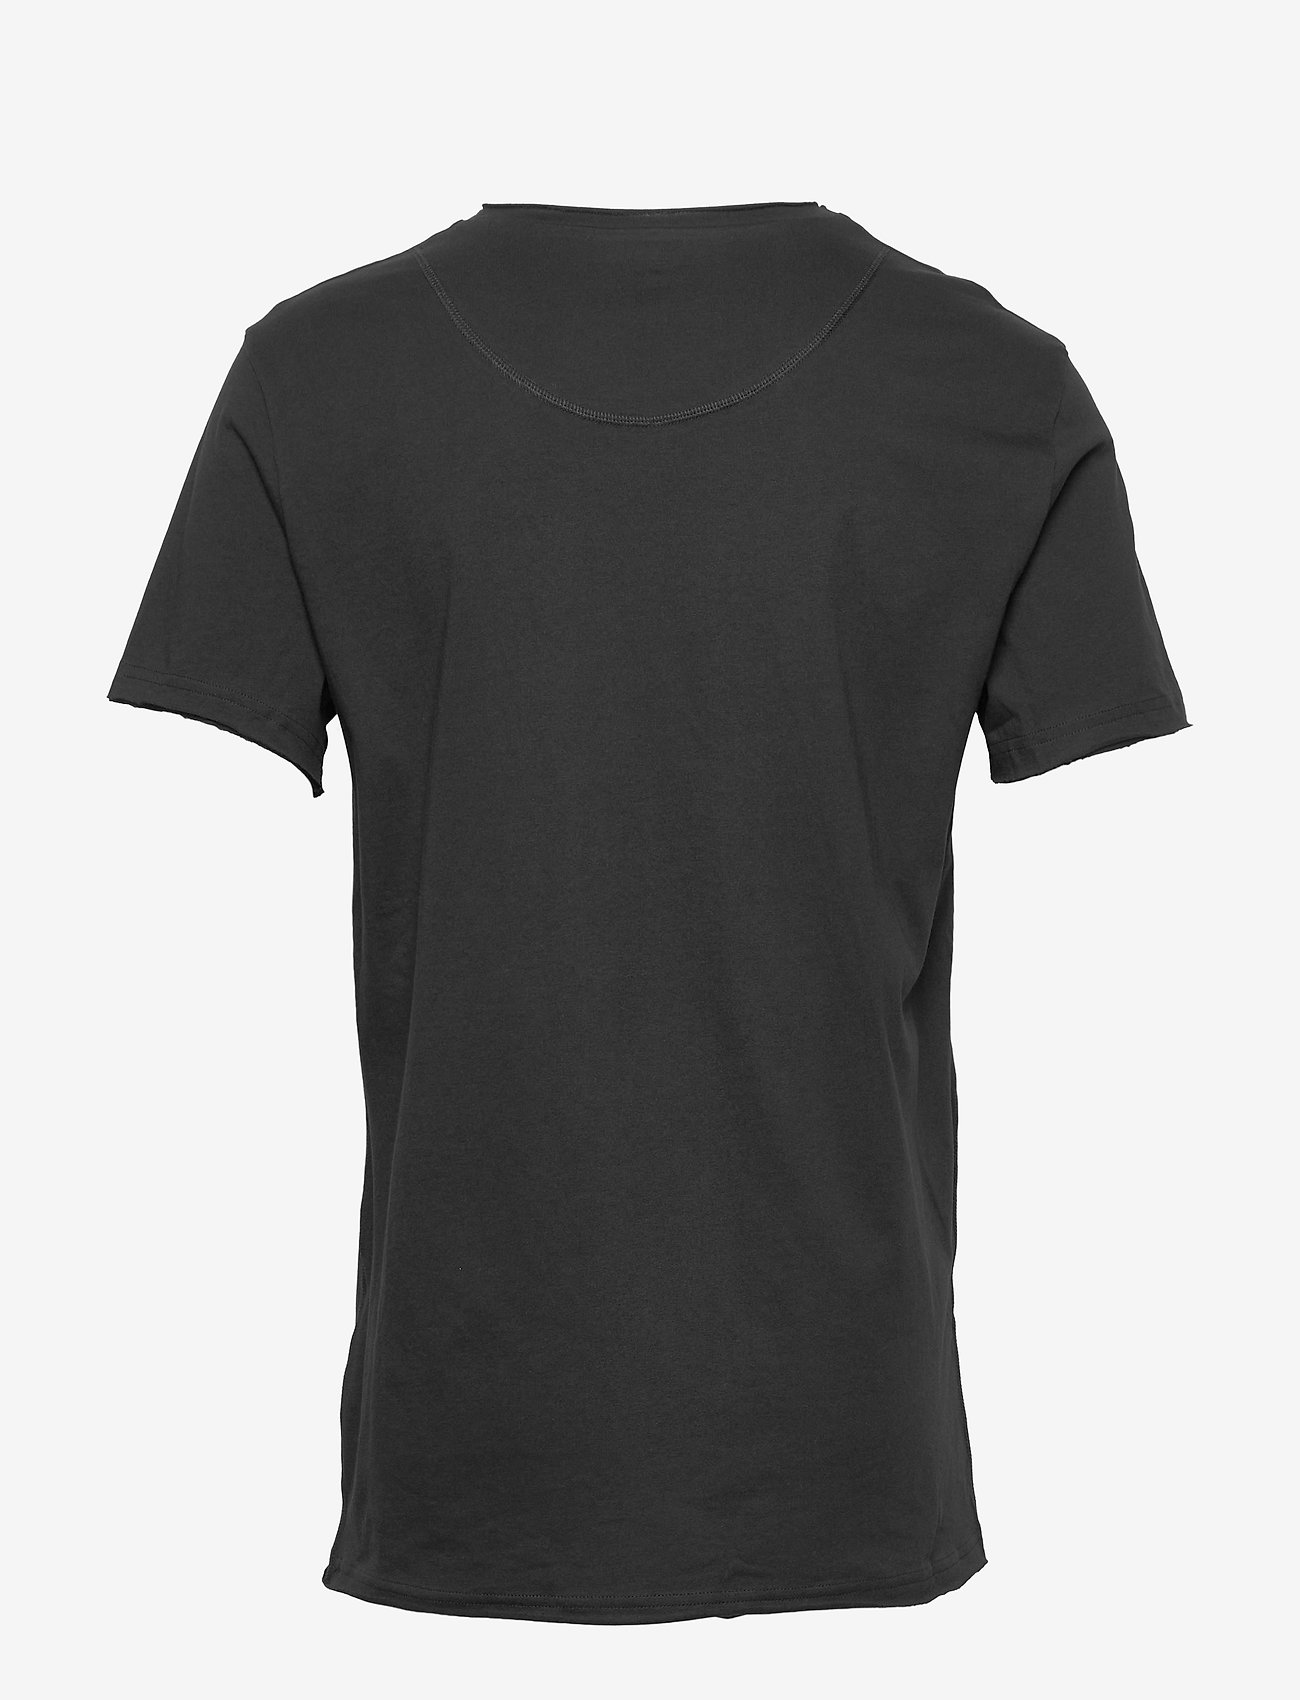 Bread & Boxers - Crew-Neck Relaxed T-shirt - basic t-shirts - black - 1